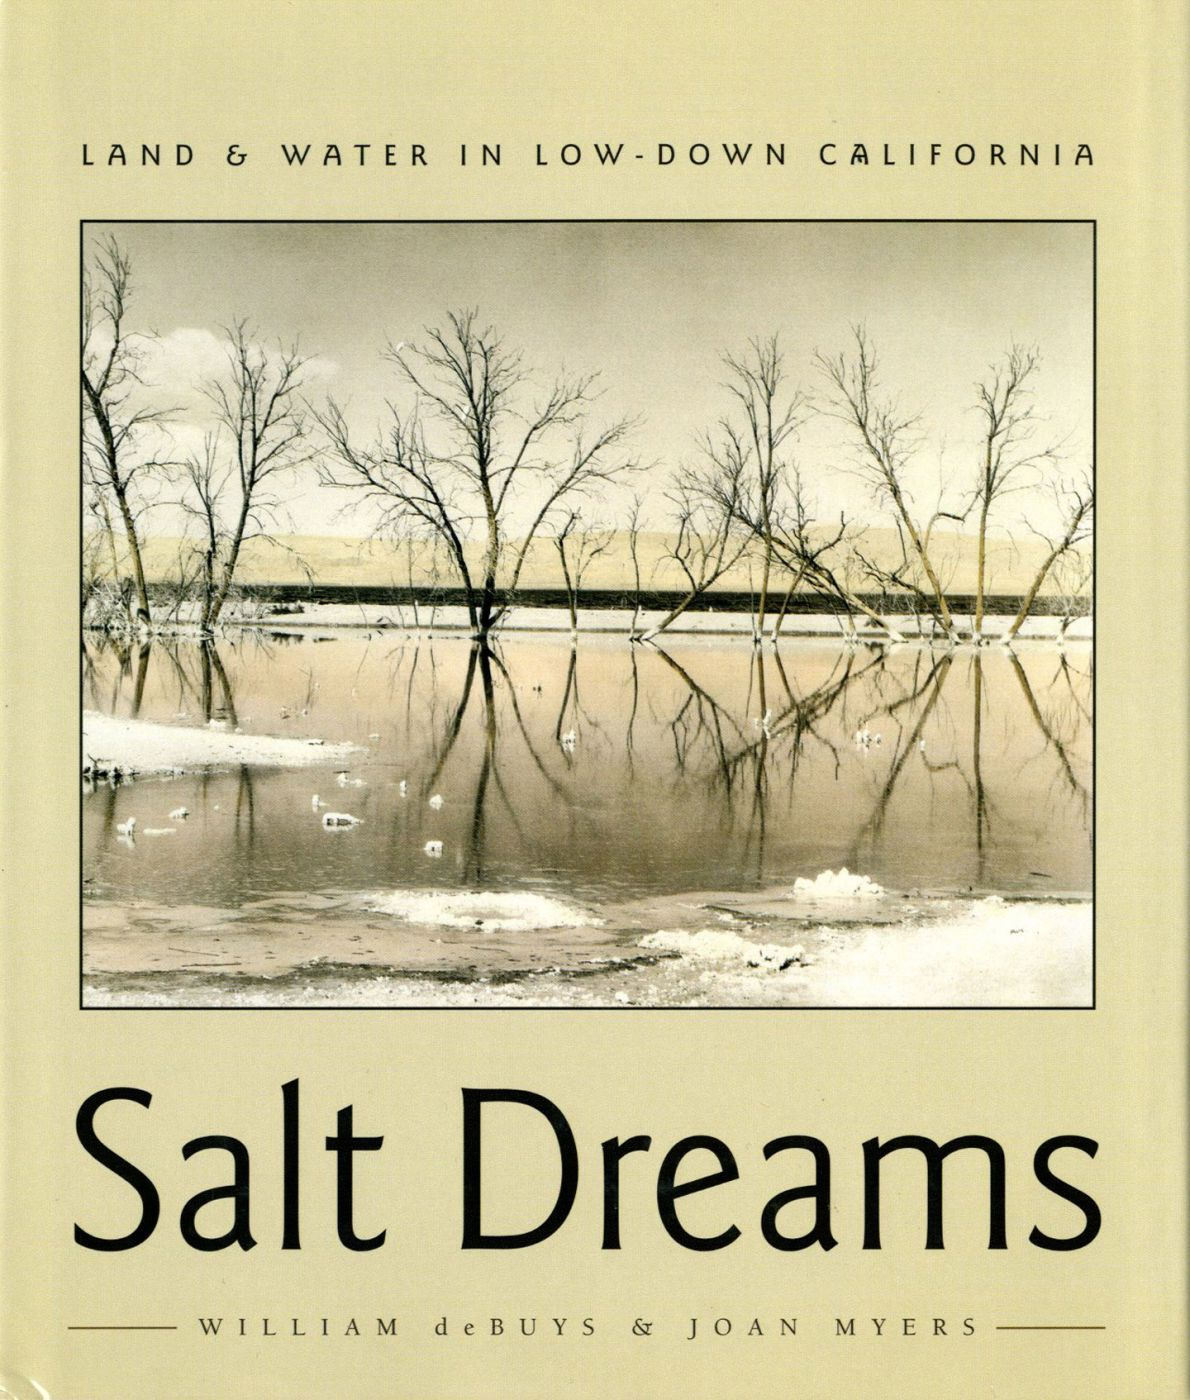 Salt Dreams: Land & Water in Low-Down California [SIGNED ASSOCIATION COPY]